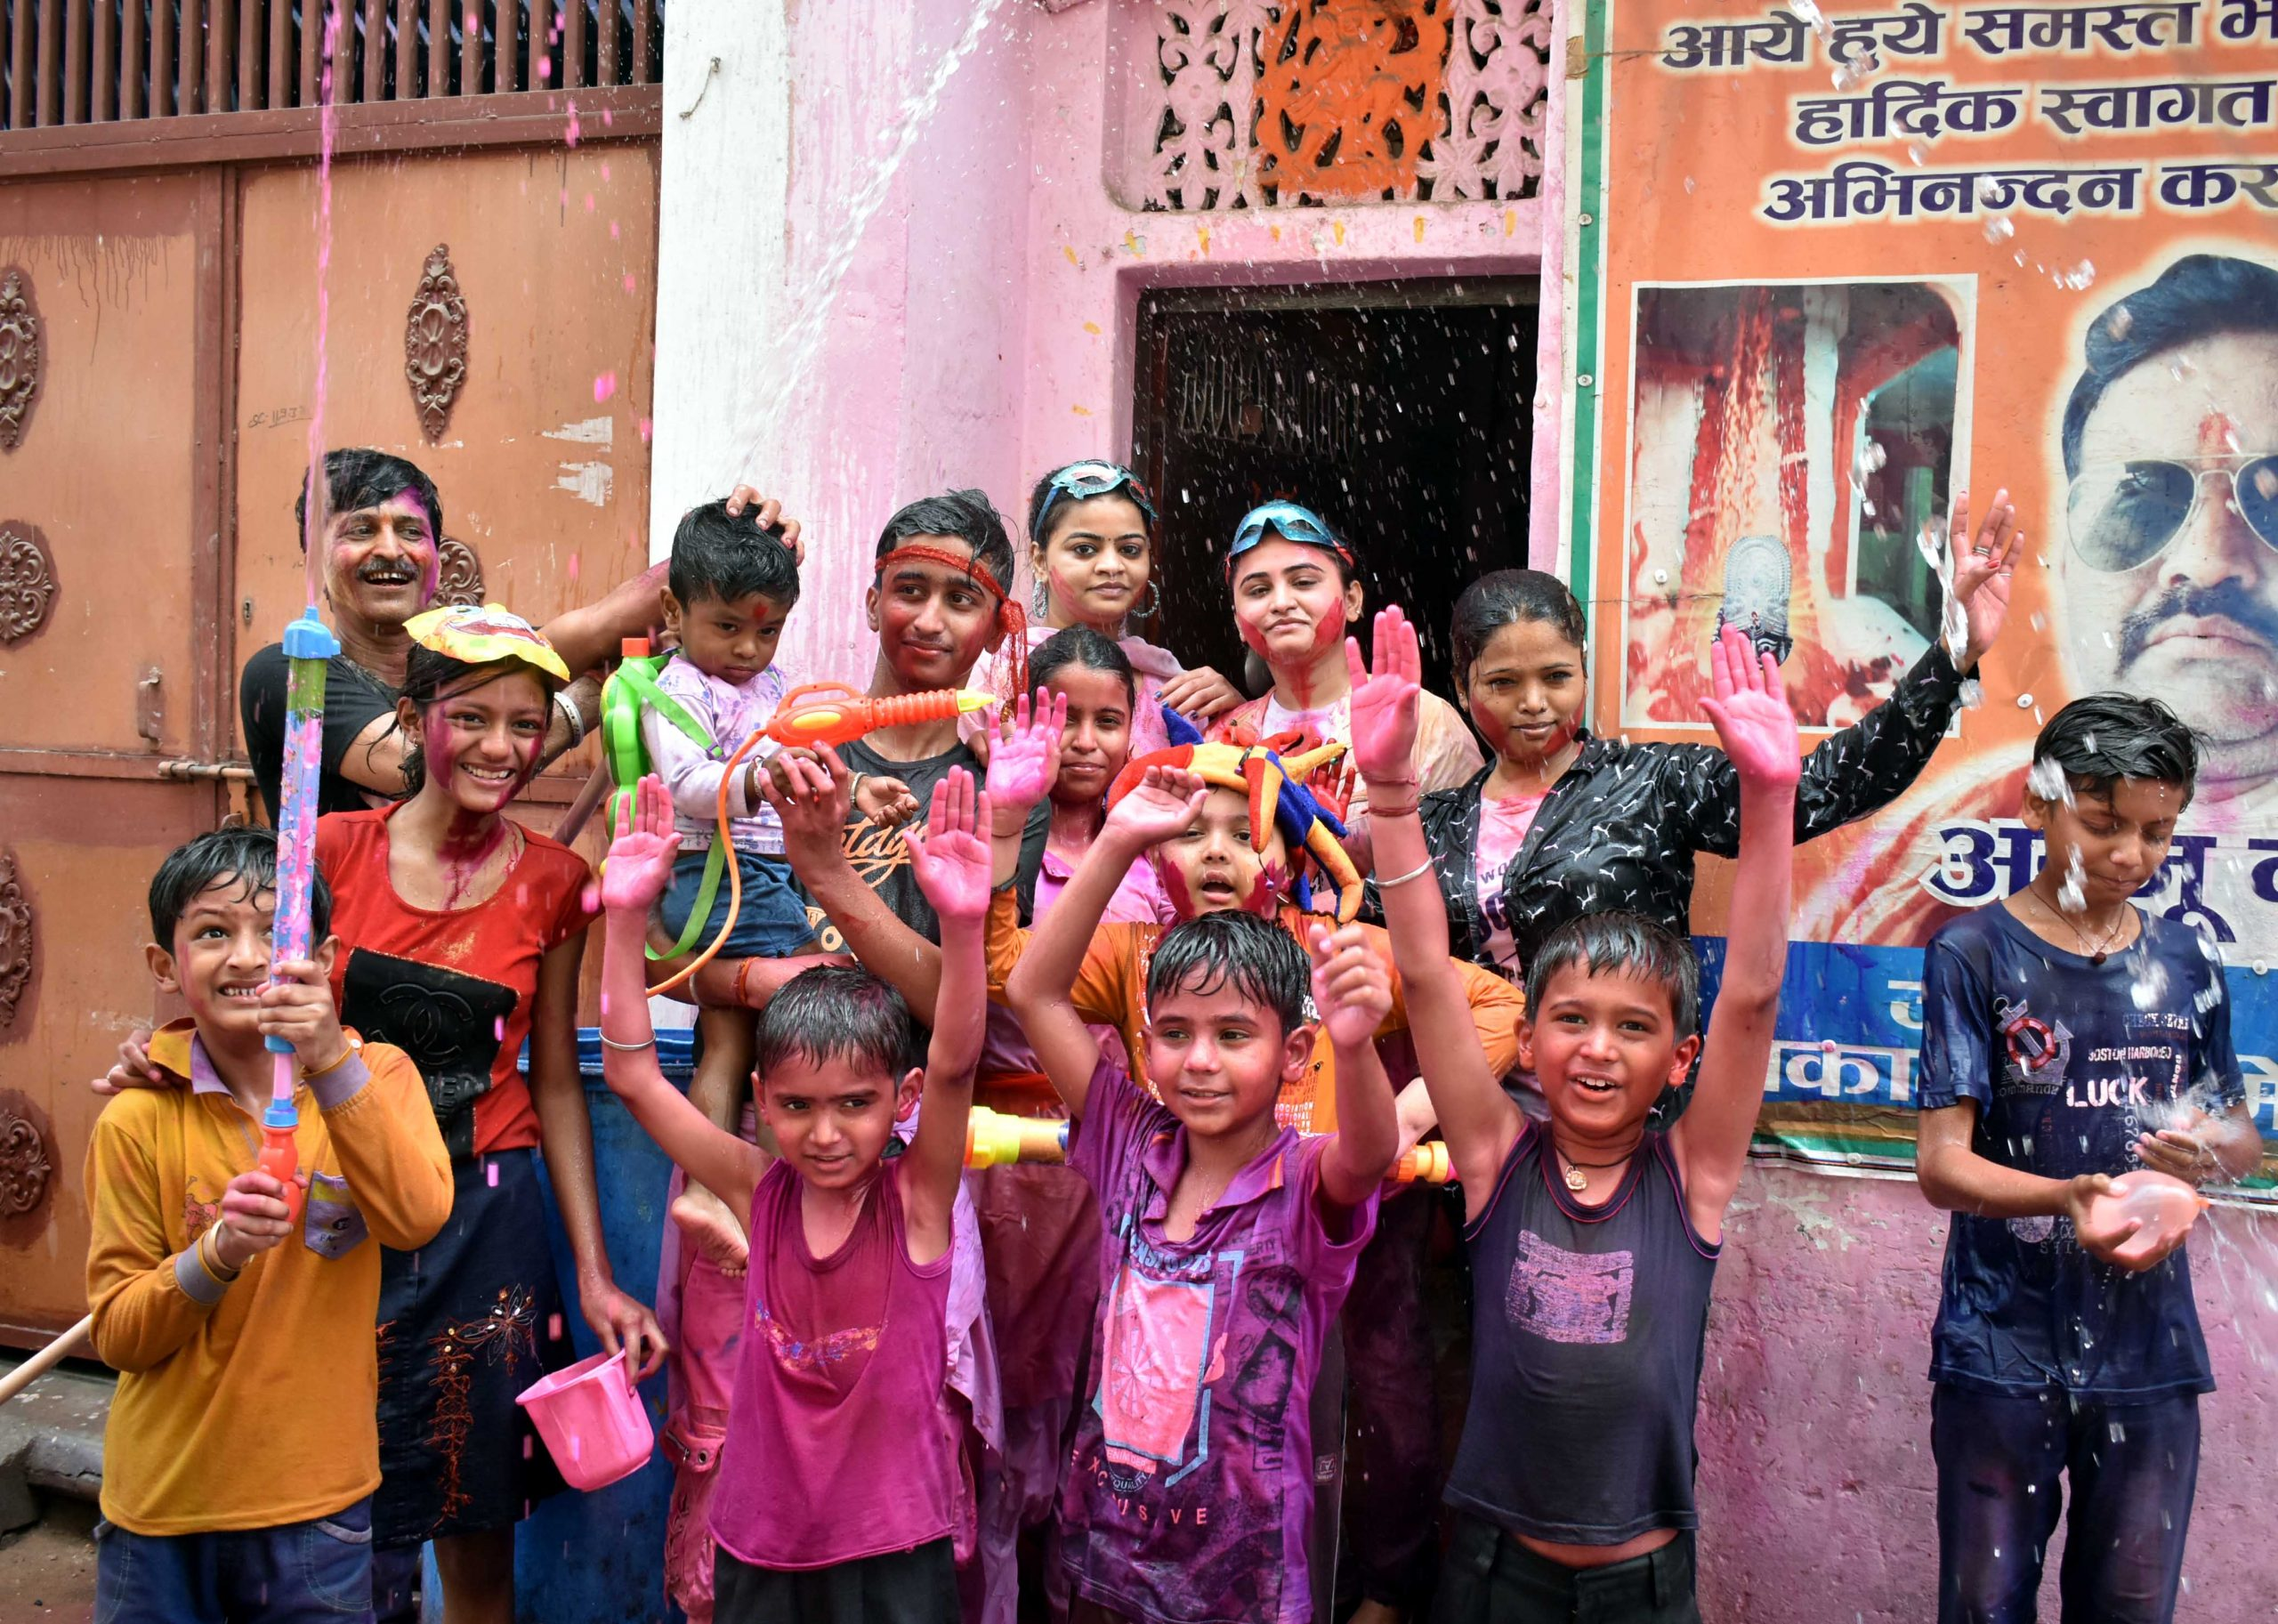 Children celebrating holi festival